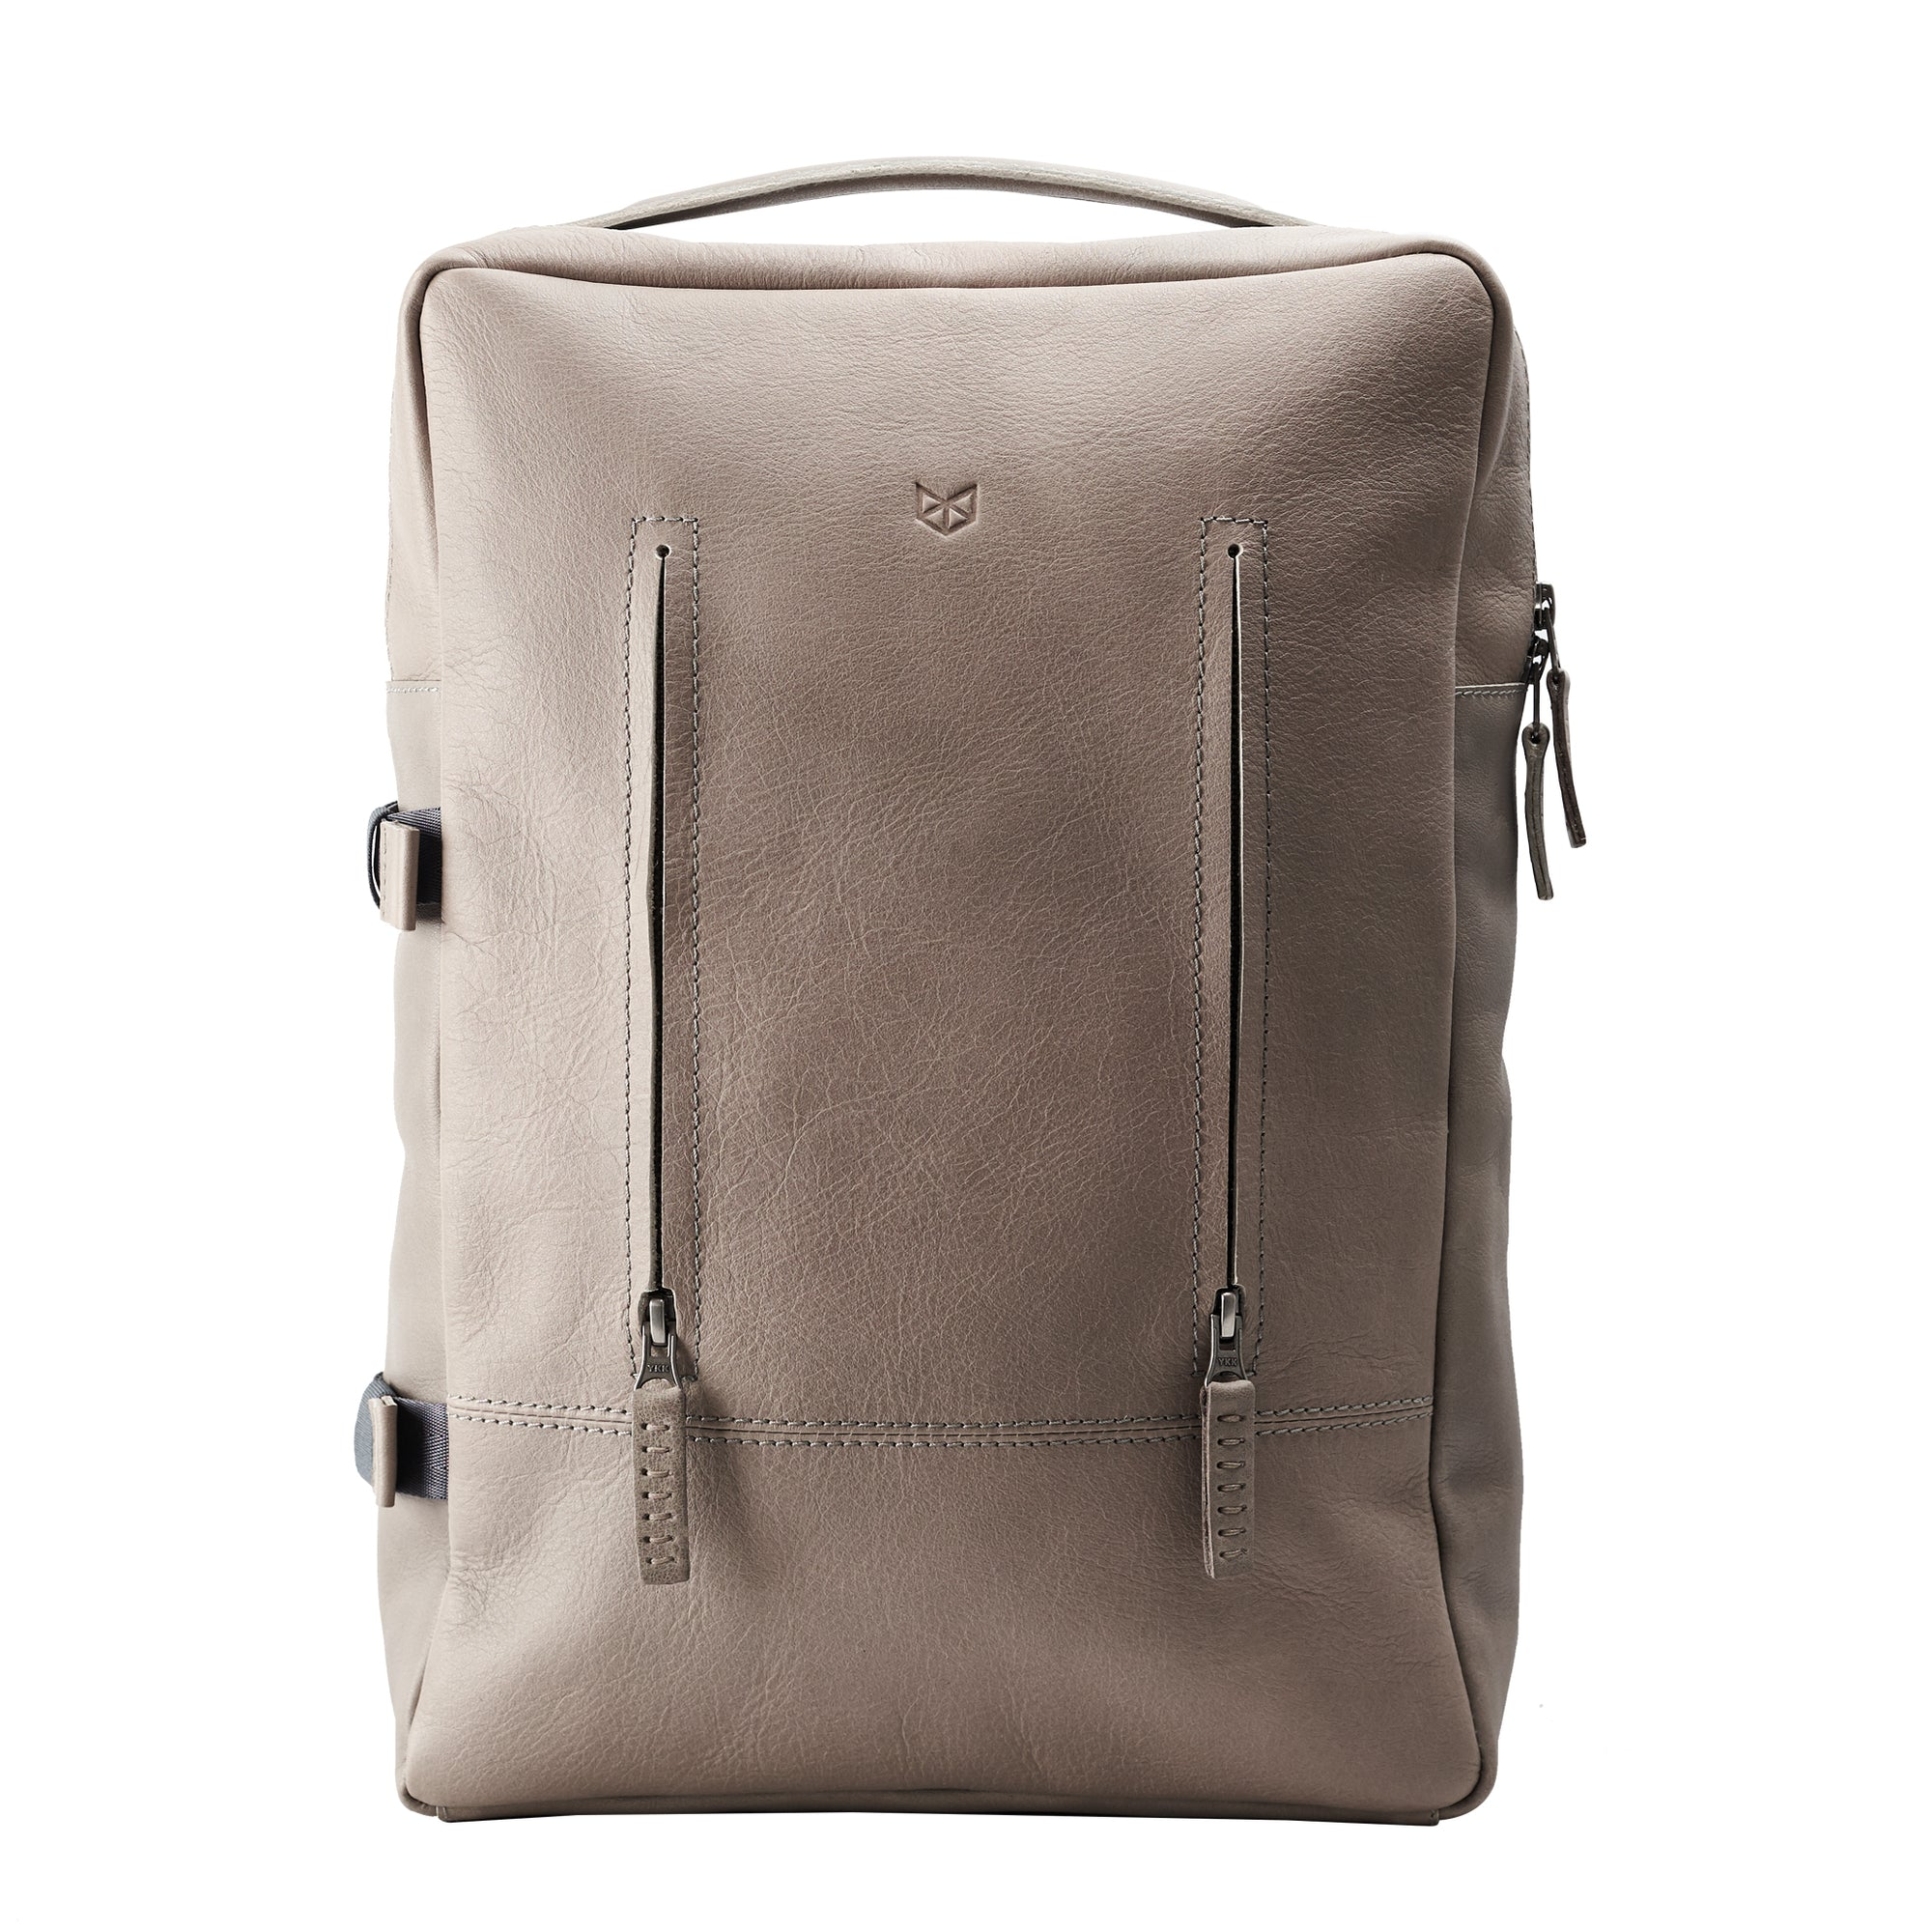 Cool Gray leather backpack for men. Minimalist style rucksack for mens gifts 62107d4059696